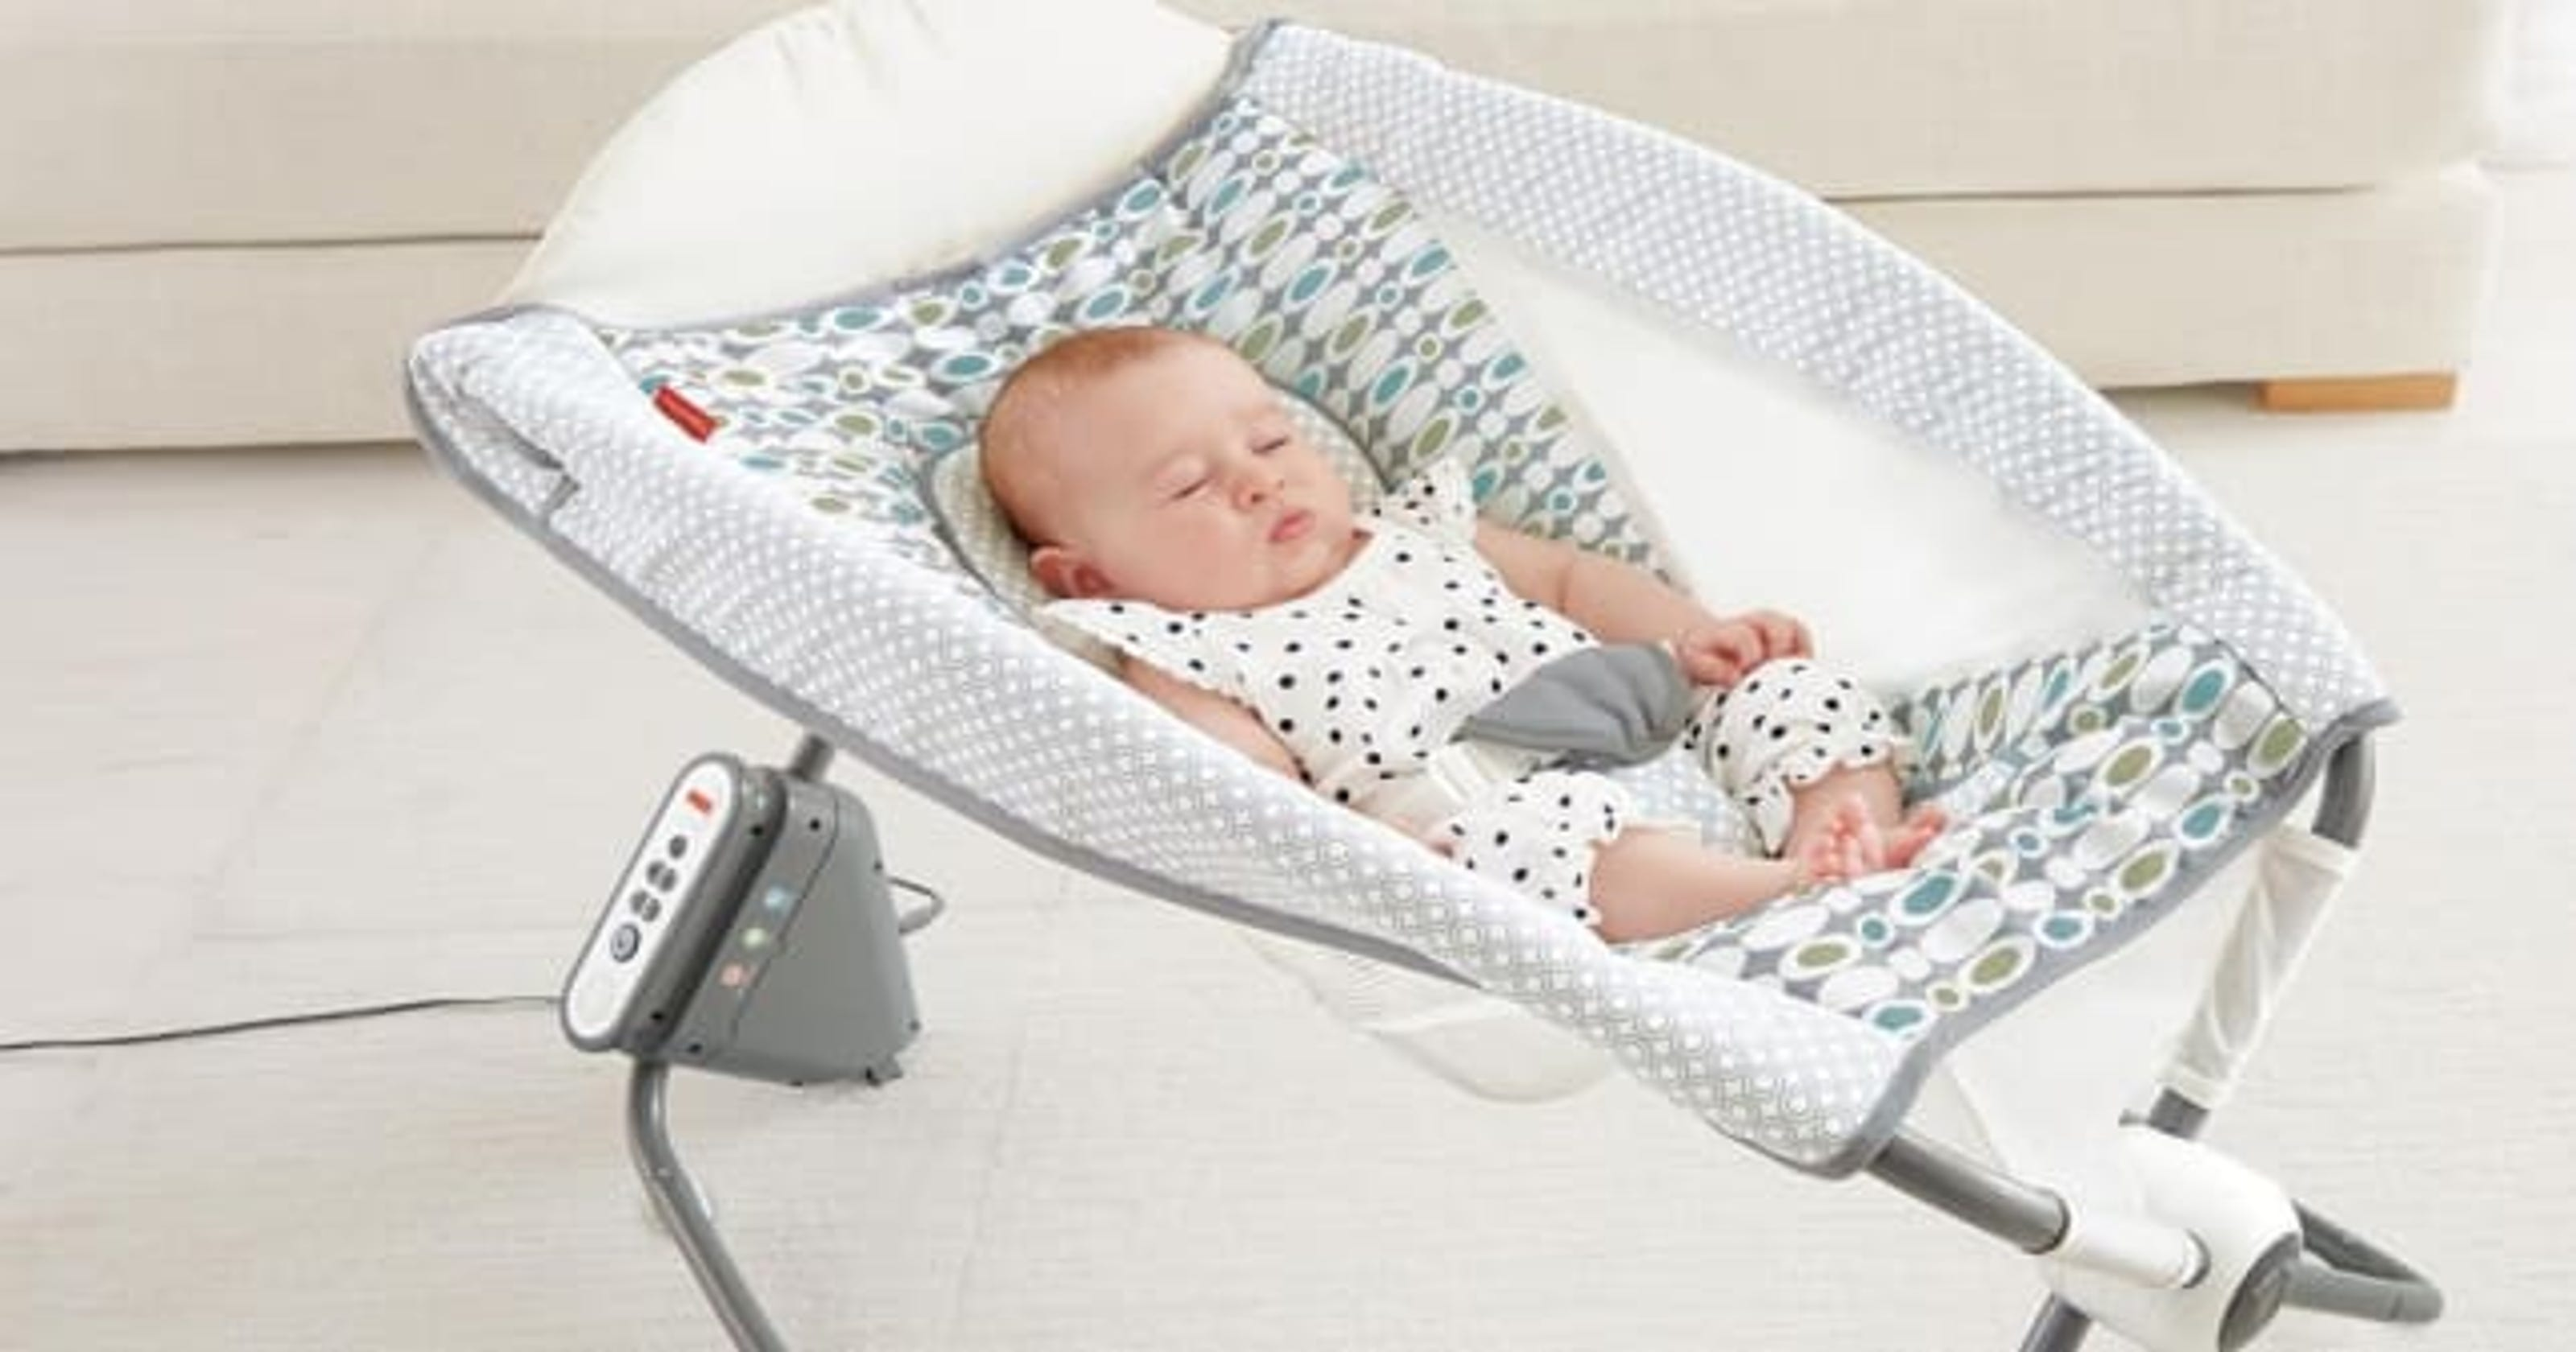 Fisher-Price Rock 'N Play Recall: How to get a refund or voucher